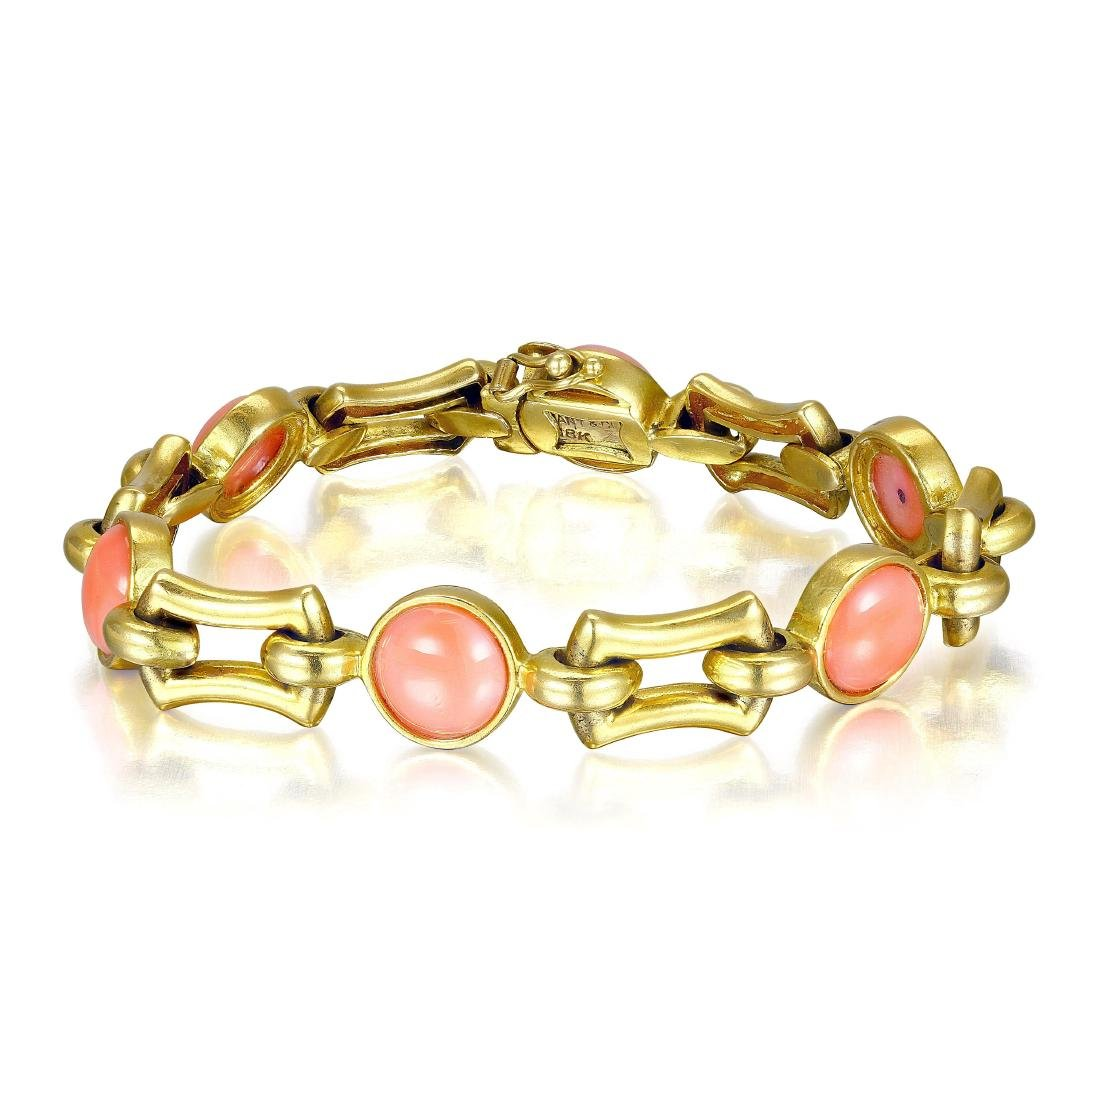 Tiffany & Co. Retro Coral and Gold Bracelet